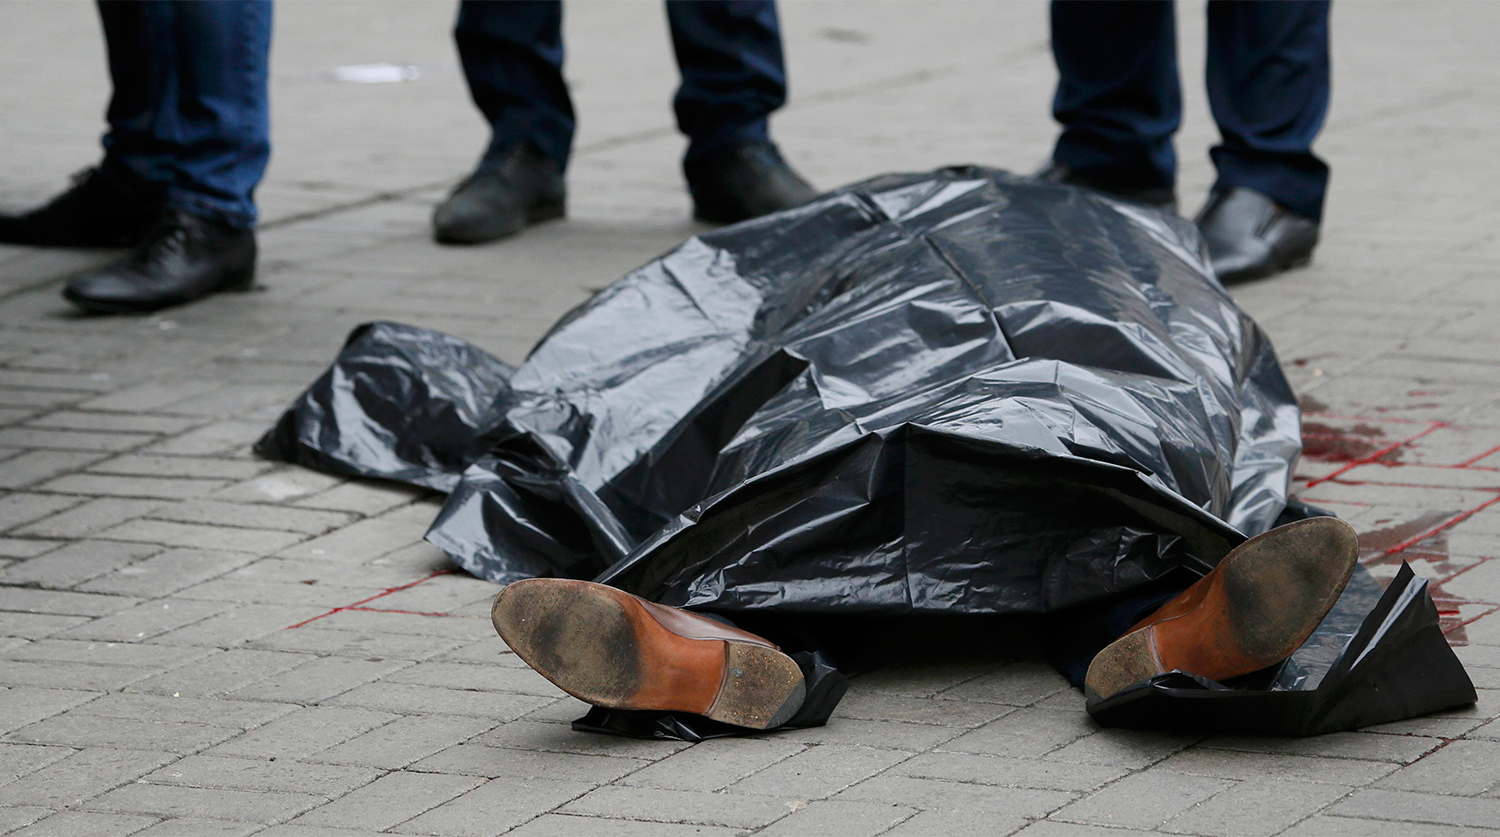 ATTENTION EDITORS - VISUAL COVERAGE OF SCENES OF INJURY OR DEATH The covered body of Denis Voronenkov, a former lawmaker of the Russian State Duma, Denis Voronenkov, who was shot dead, is seen in central Kiev, Ukraine March 23, 2017. REUTERS/Valentyn Ogirenko TEMPLATE OUT.